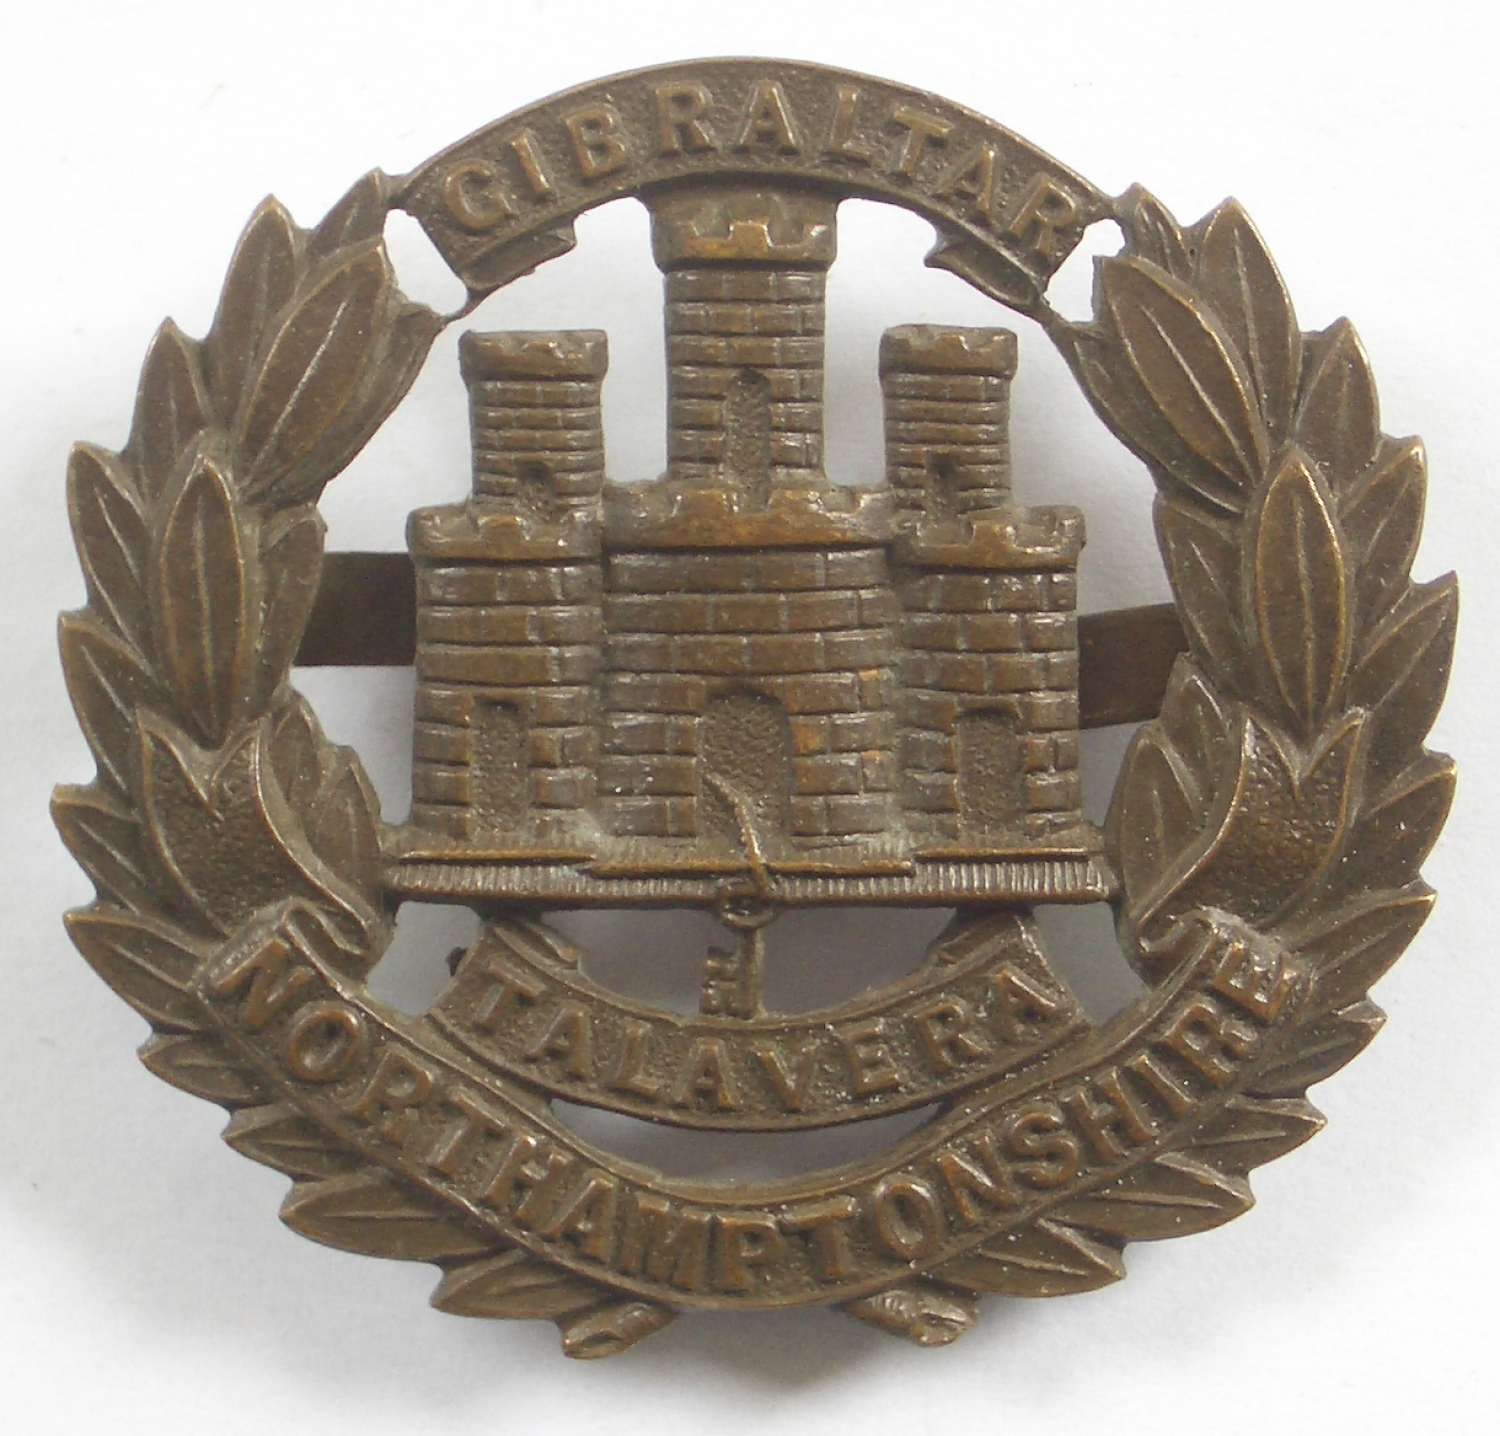 Northamptonshire Regiment OSD cap badge